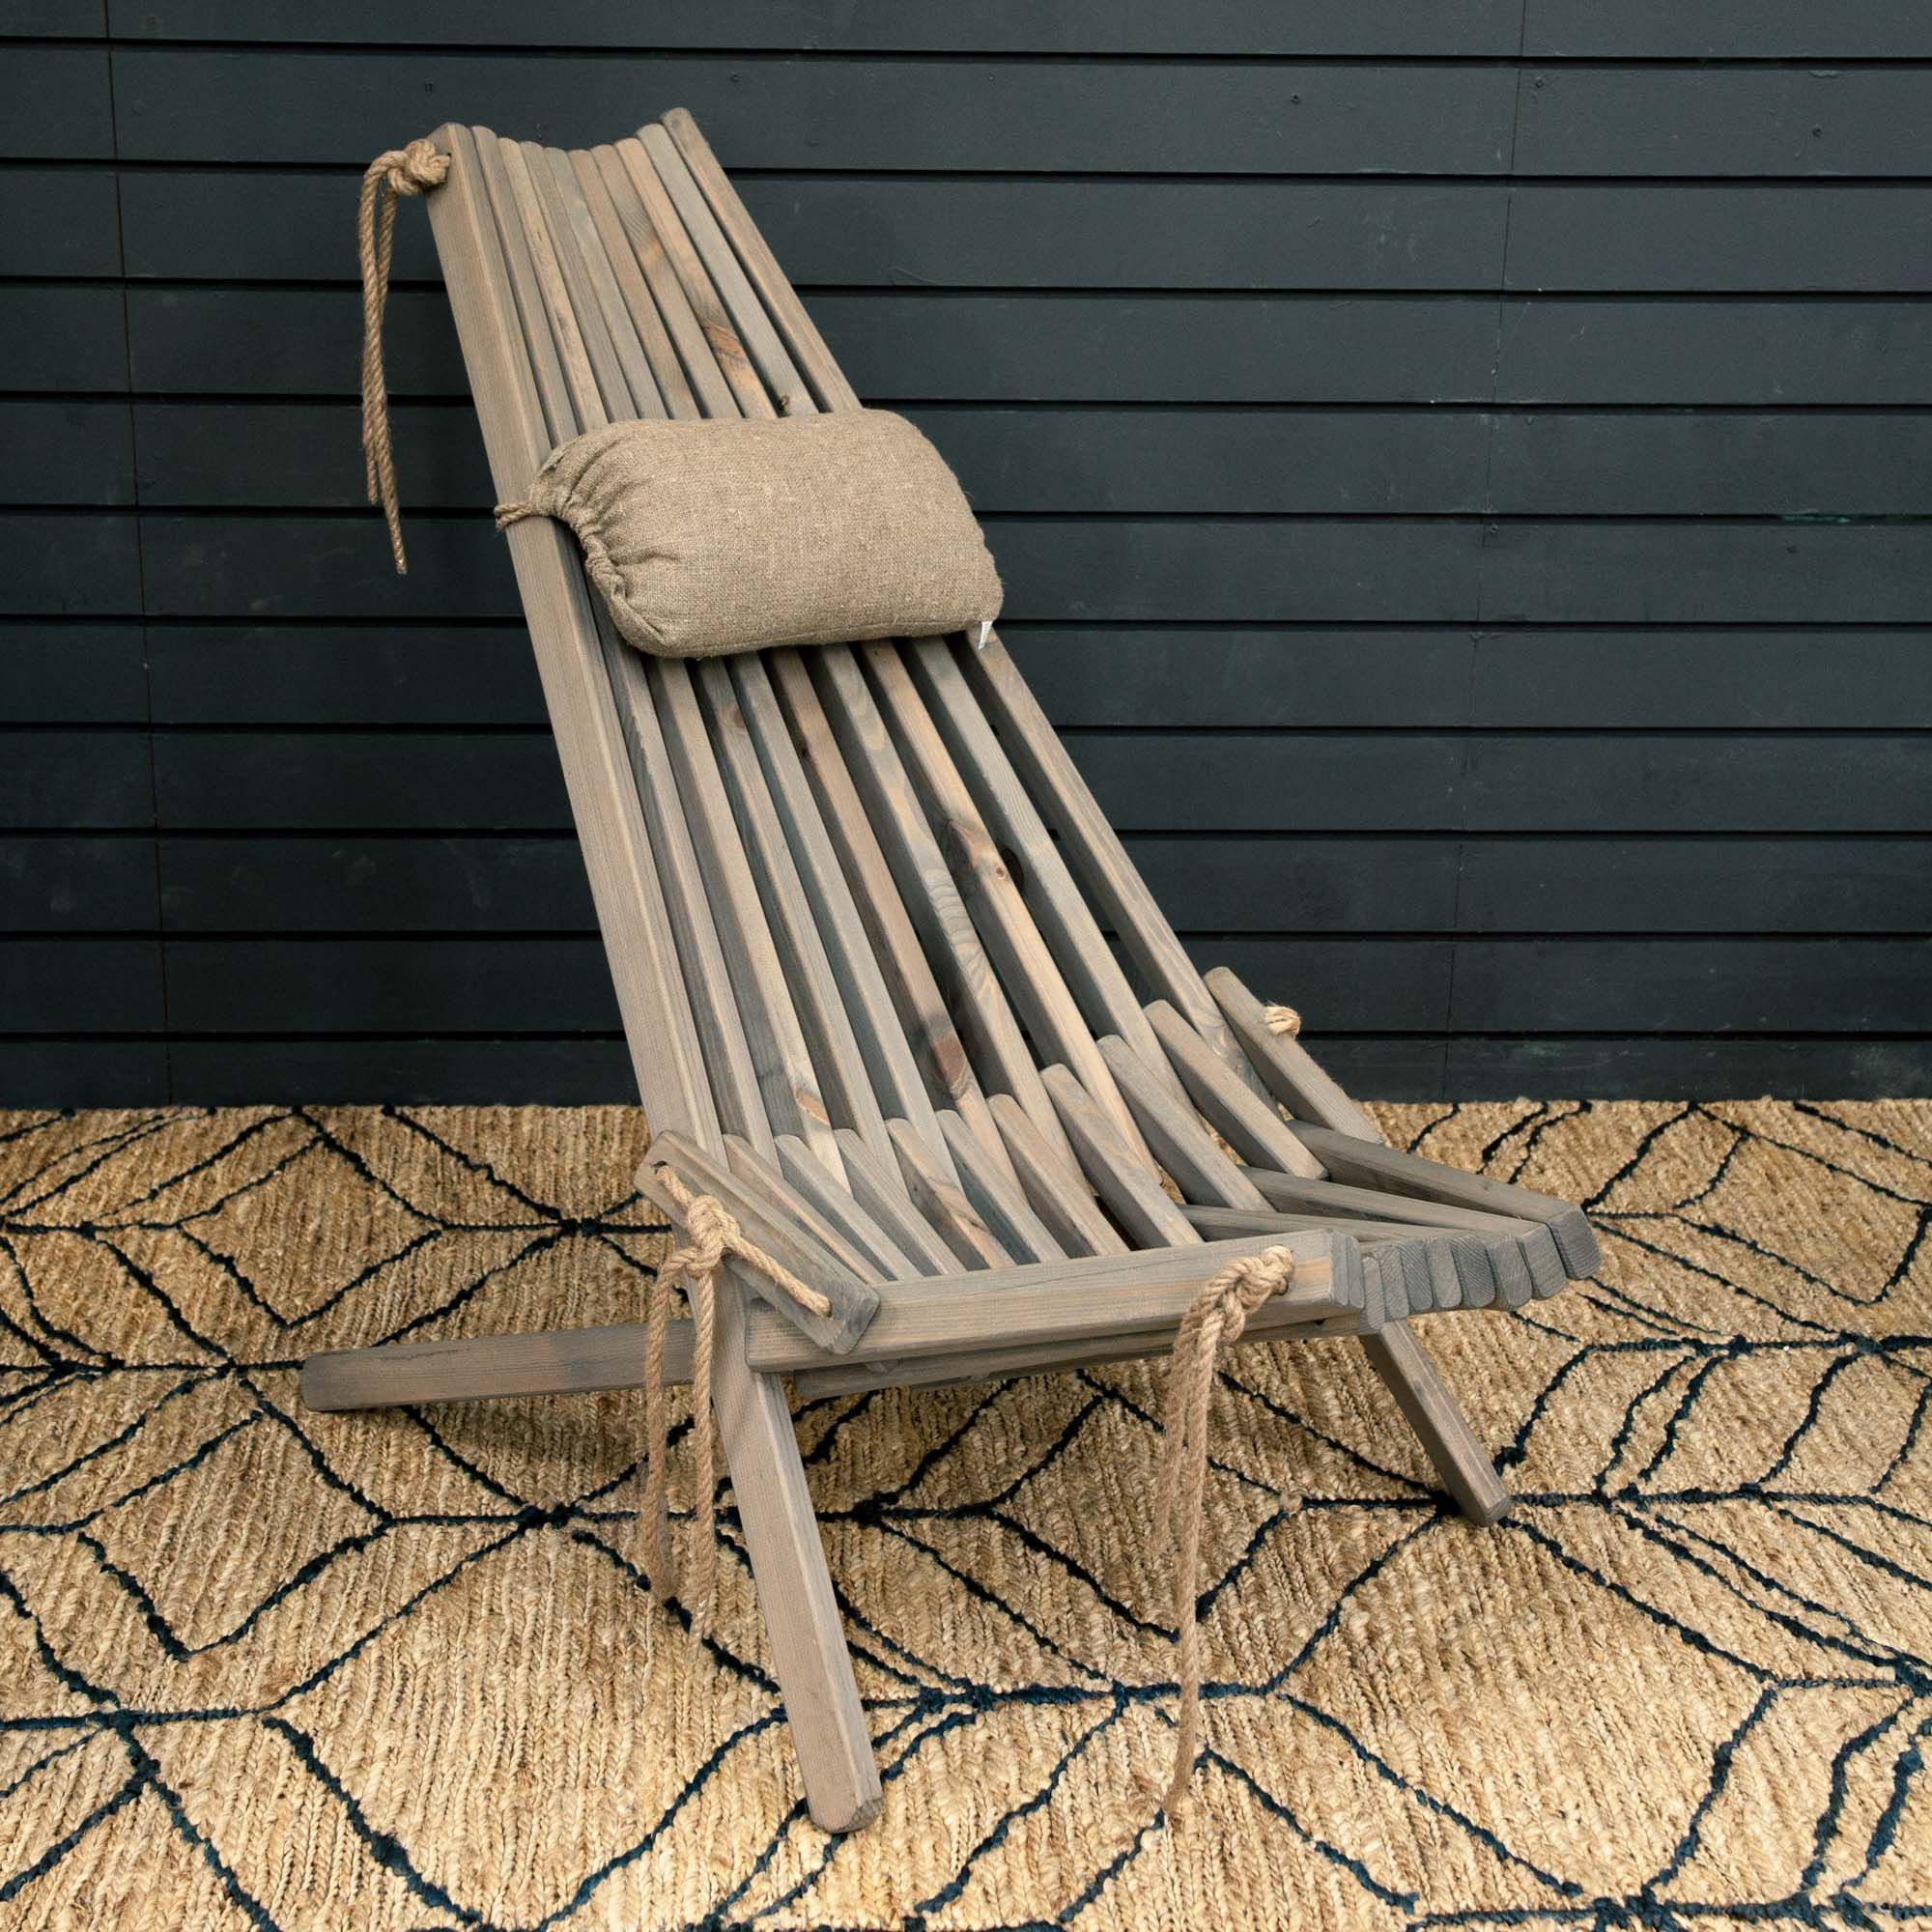 Buy Swedish Folding Wood and Rope Chair with Linen Cushion